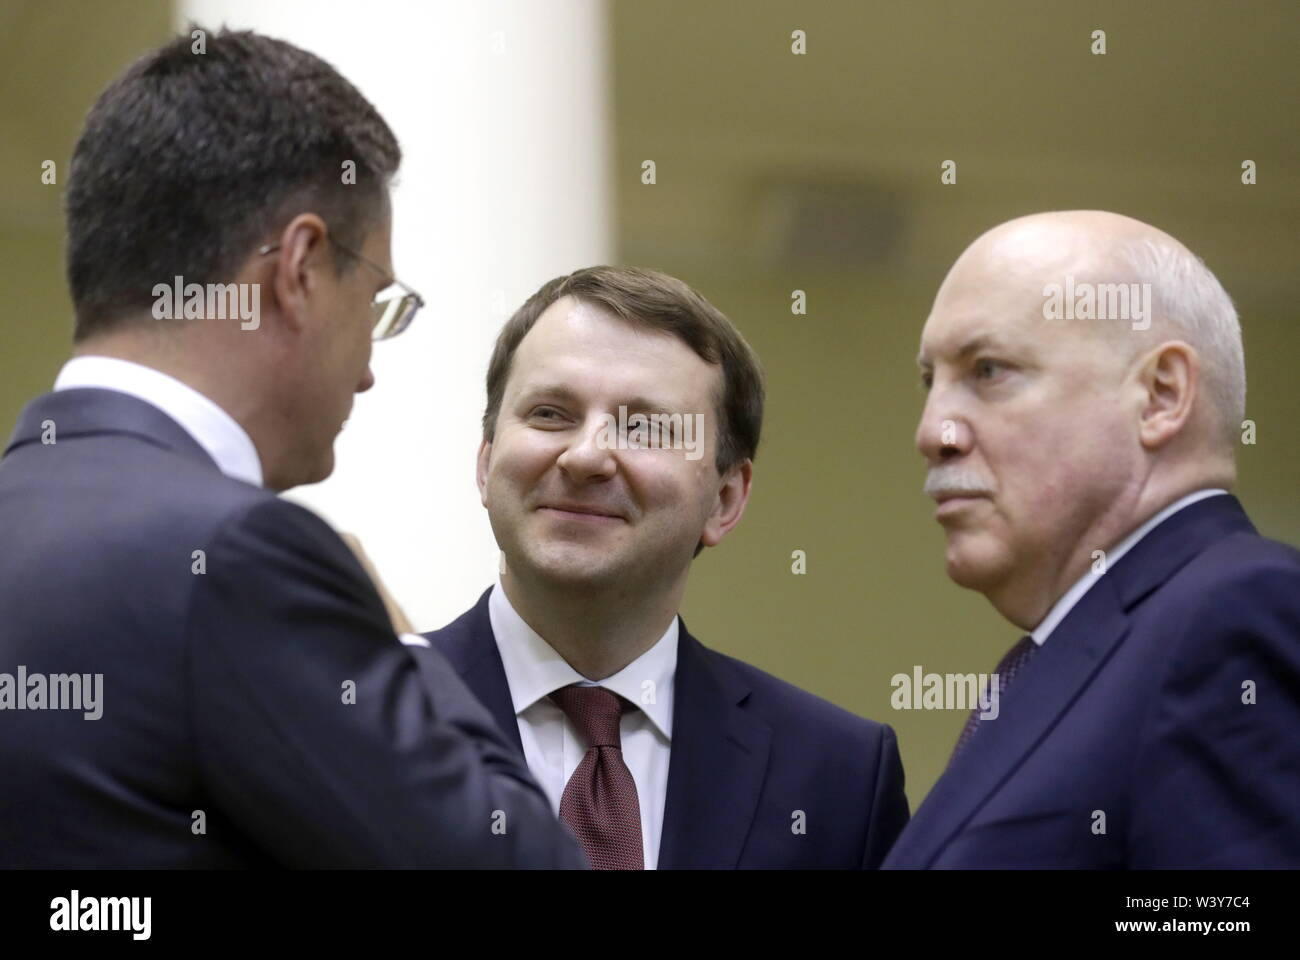 St Petersburg, Russia. 18th July, 2019. ST PETERSBURG, RUSSIA - JULY 18, 2019: Russia's Energy Minister Alexander Novak, Economic Development Minister Maxim Oreshkin, and Ambassador to Belarus Dmitry Mezentsev (L-R) attend a meeting between the Presidents of Russia and Belarus at the Tauride Palace. Mikhail Metzel/TASS Credit: ITAR-TASS News Agency/Alamy Live News - Stock Image